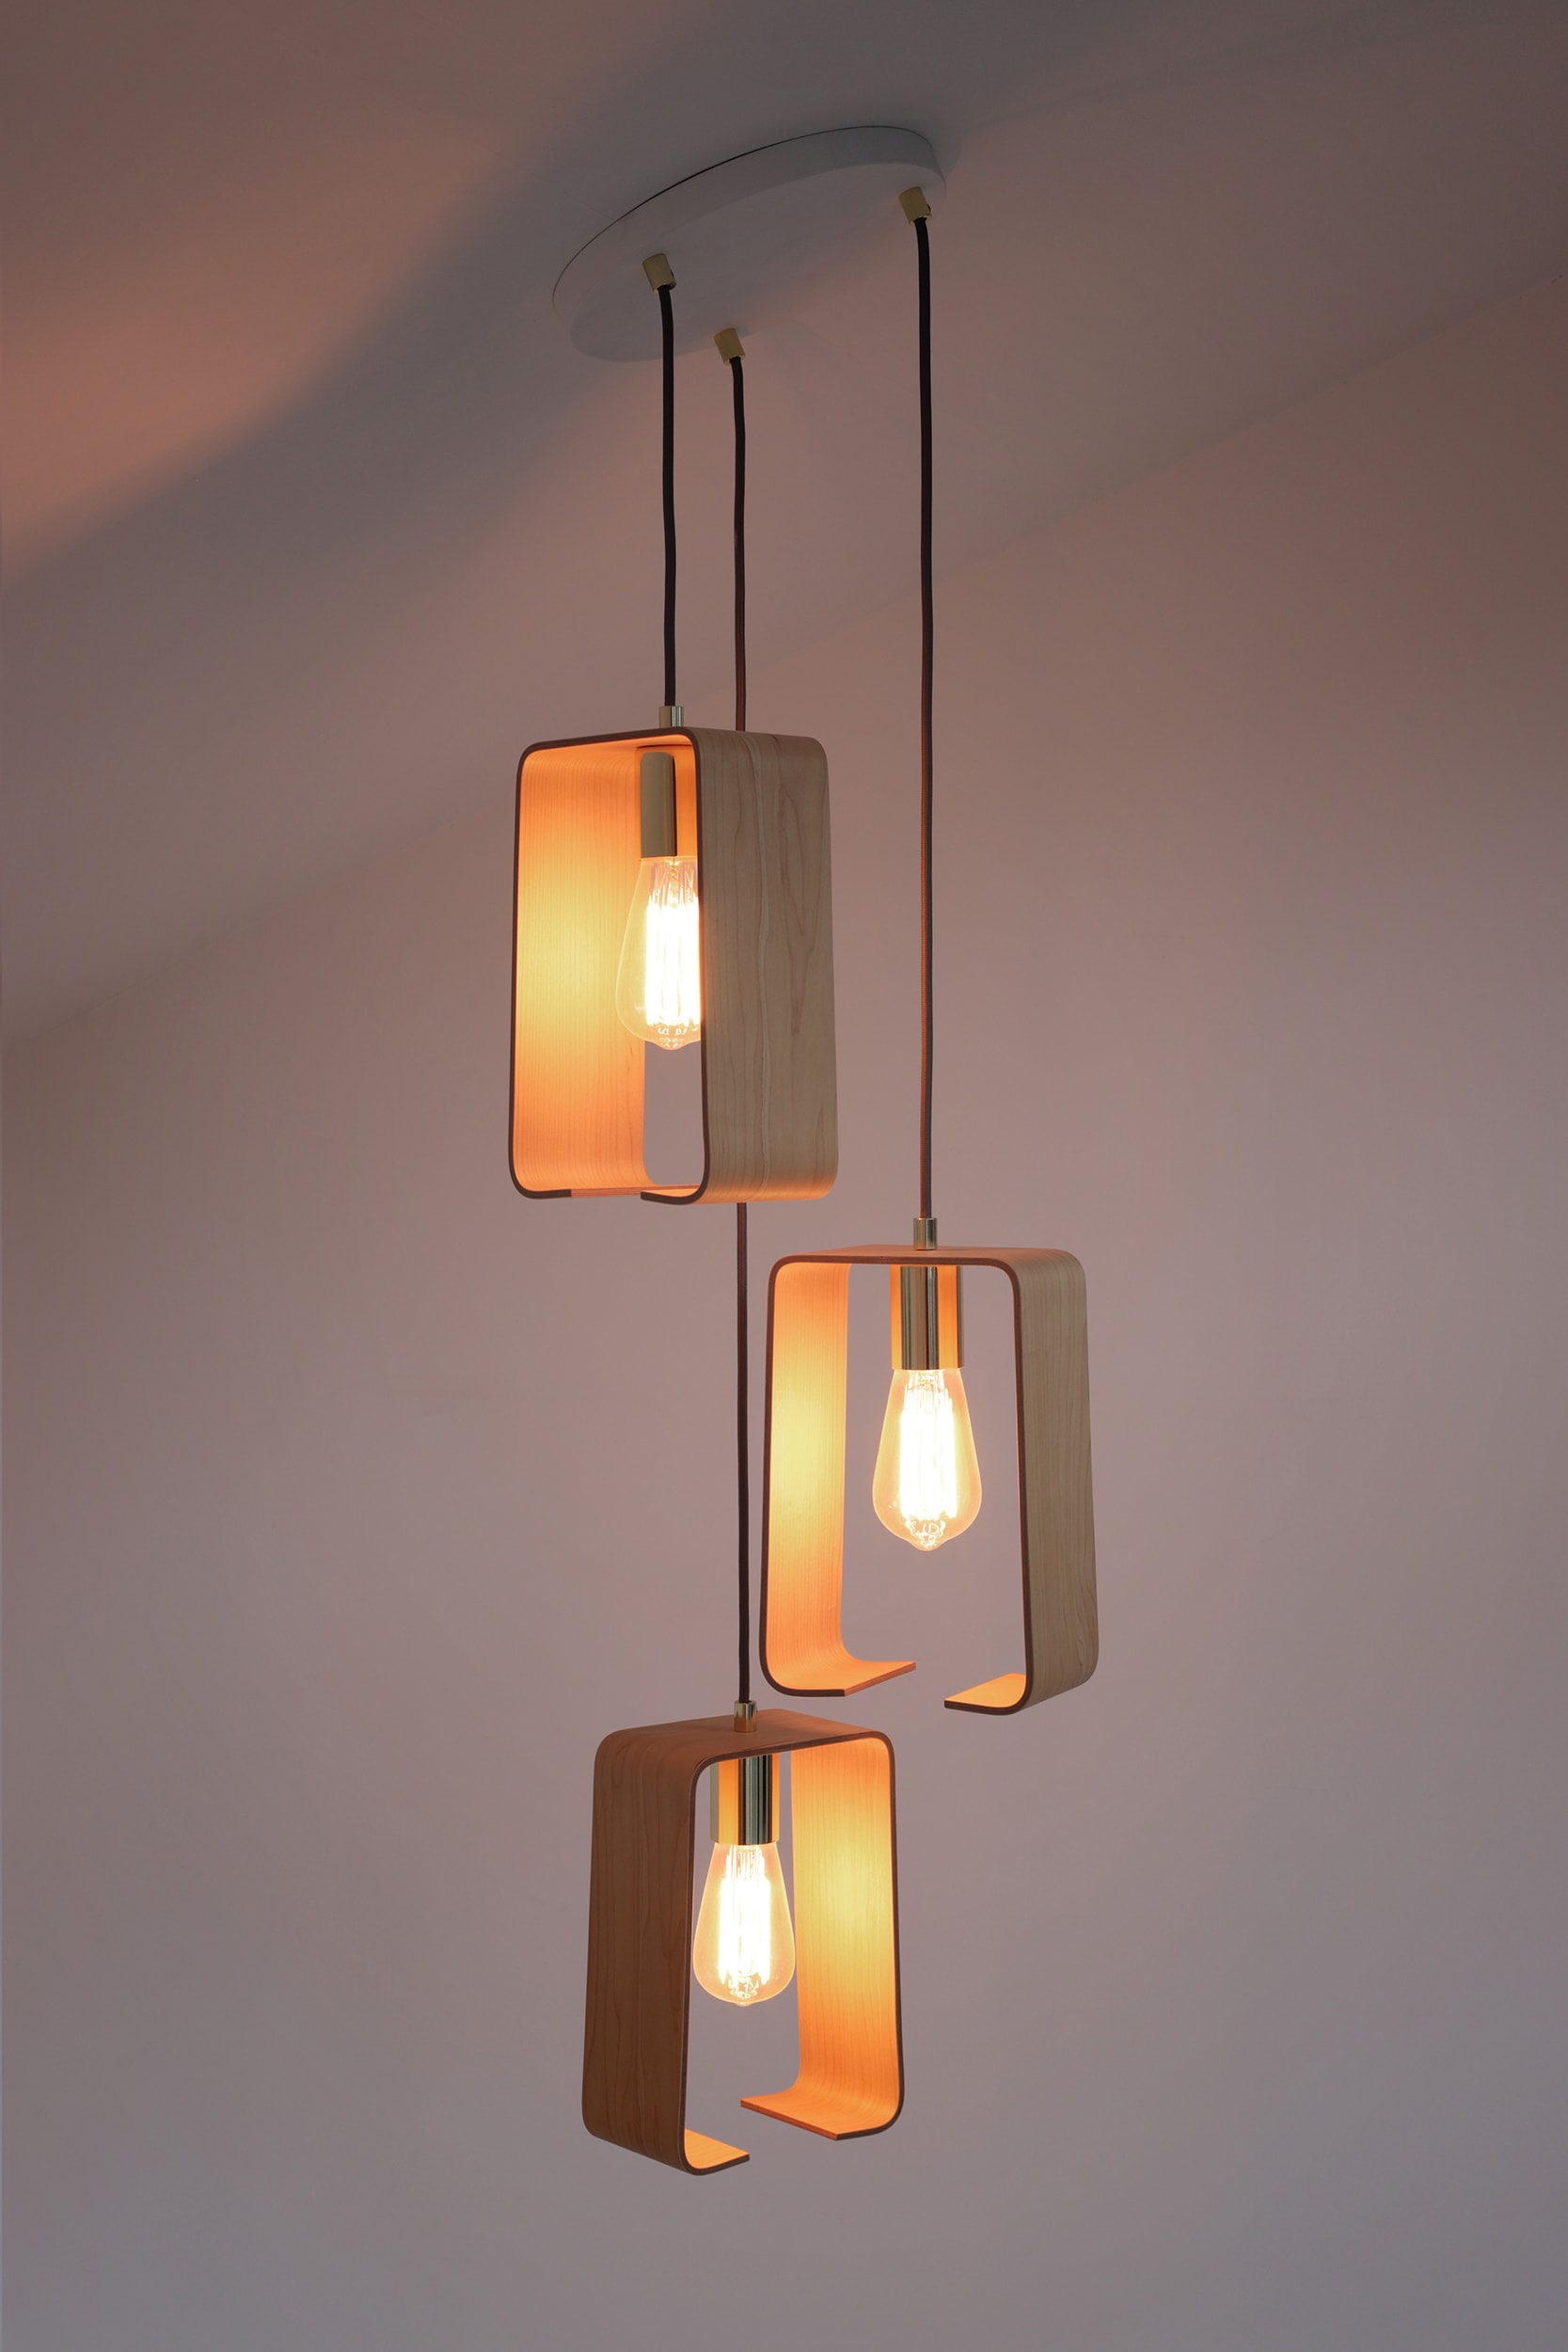 Based on our Fab Pendants design